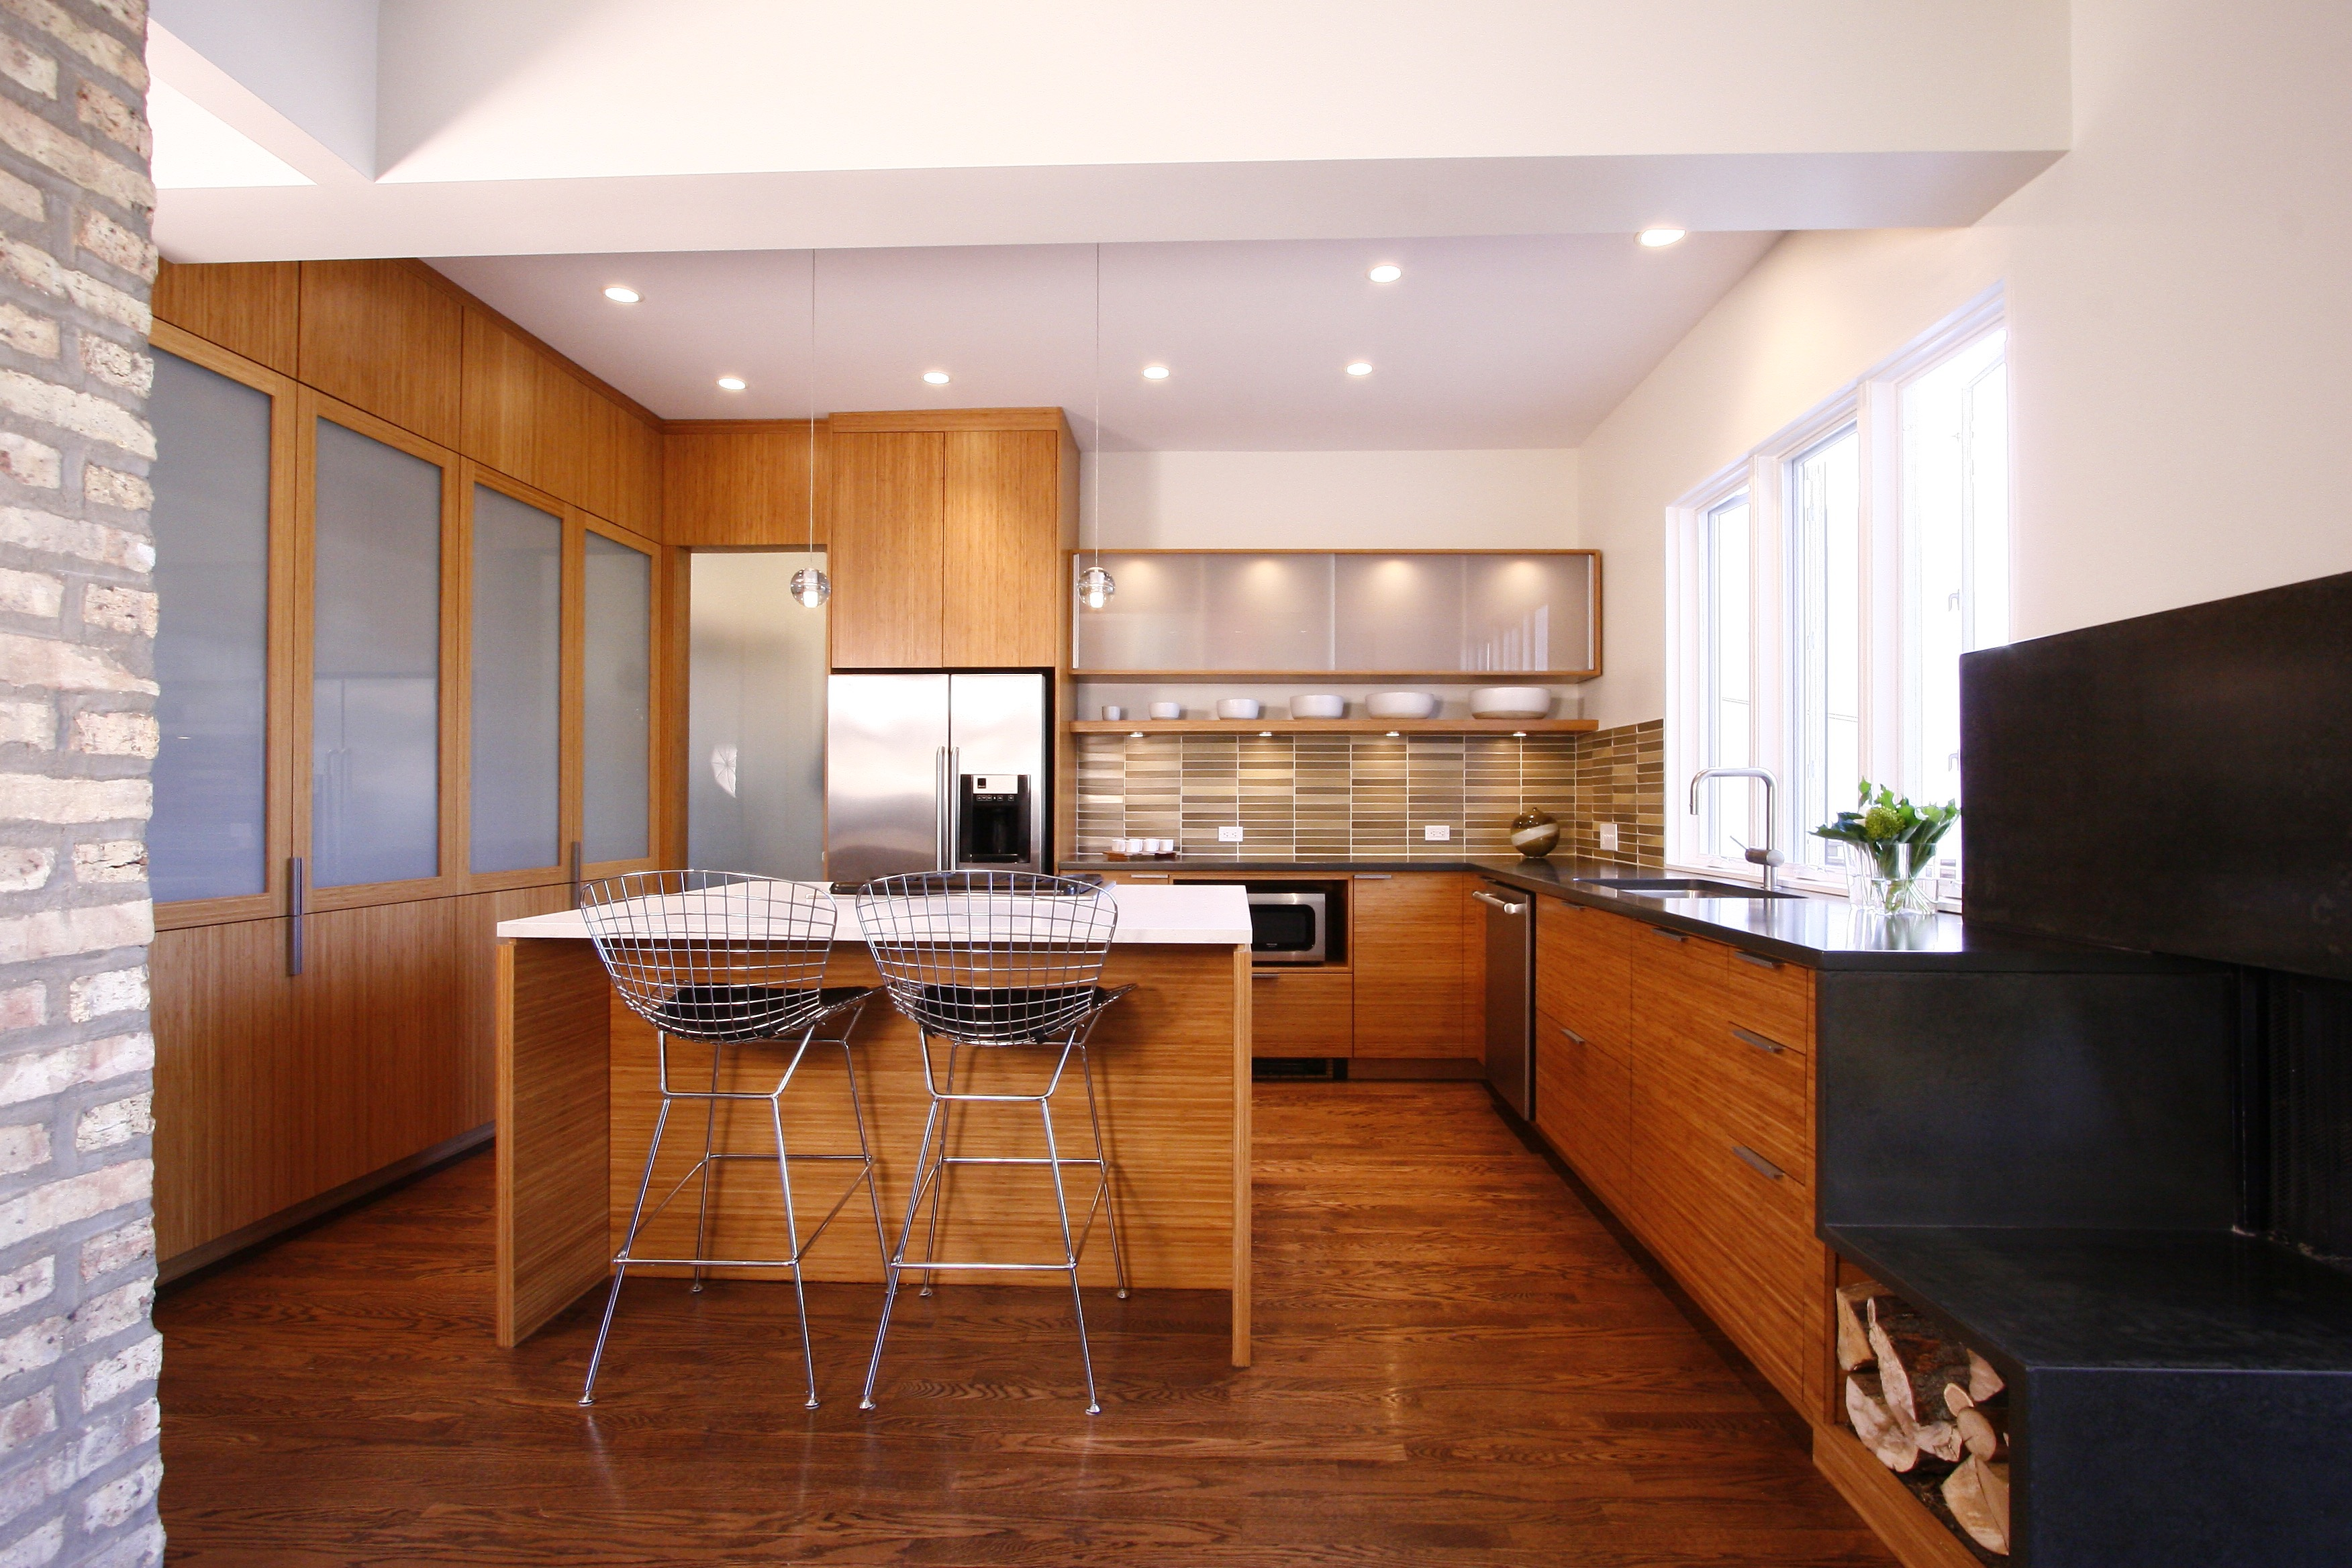 Bamboo Flooring Creates Warmth In Contemporary Kitchen (Image 2 of 20)